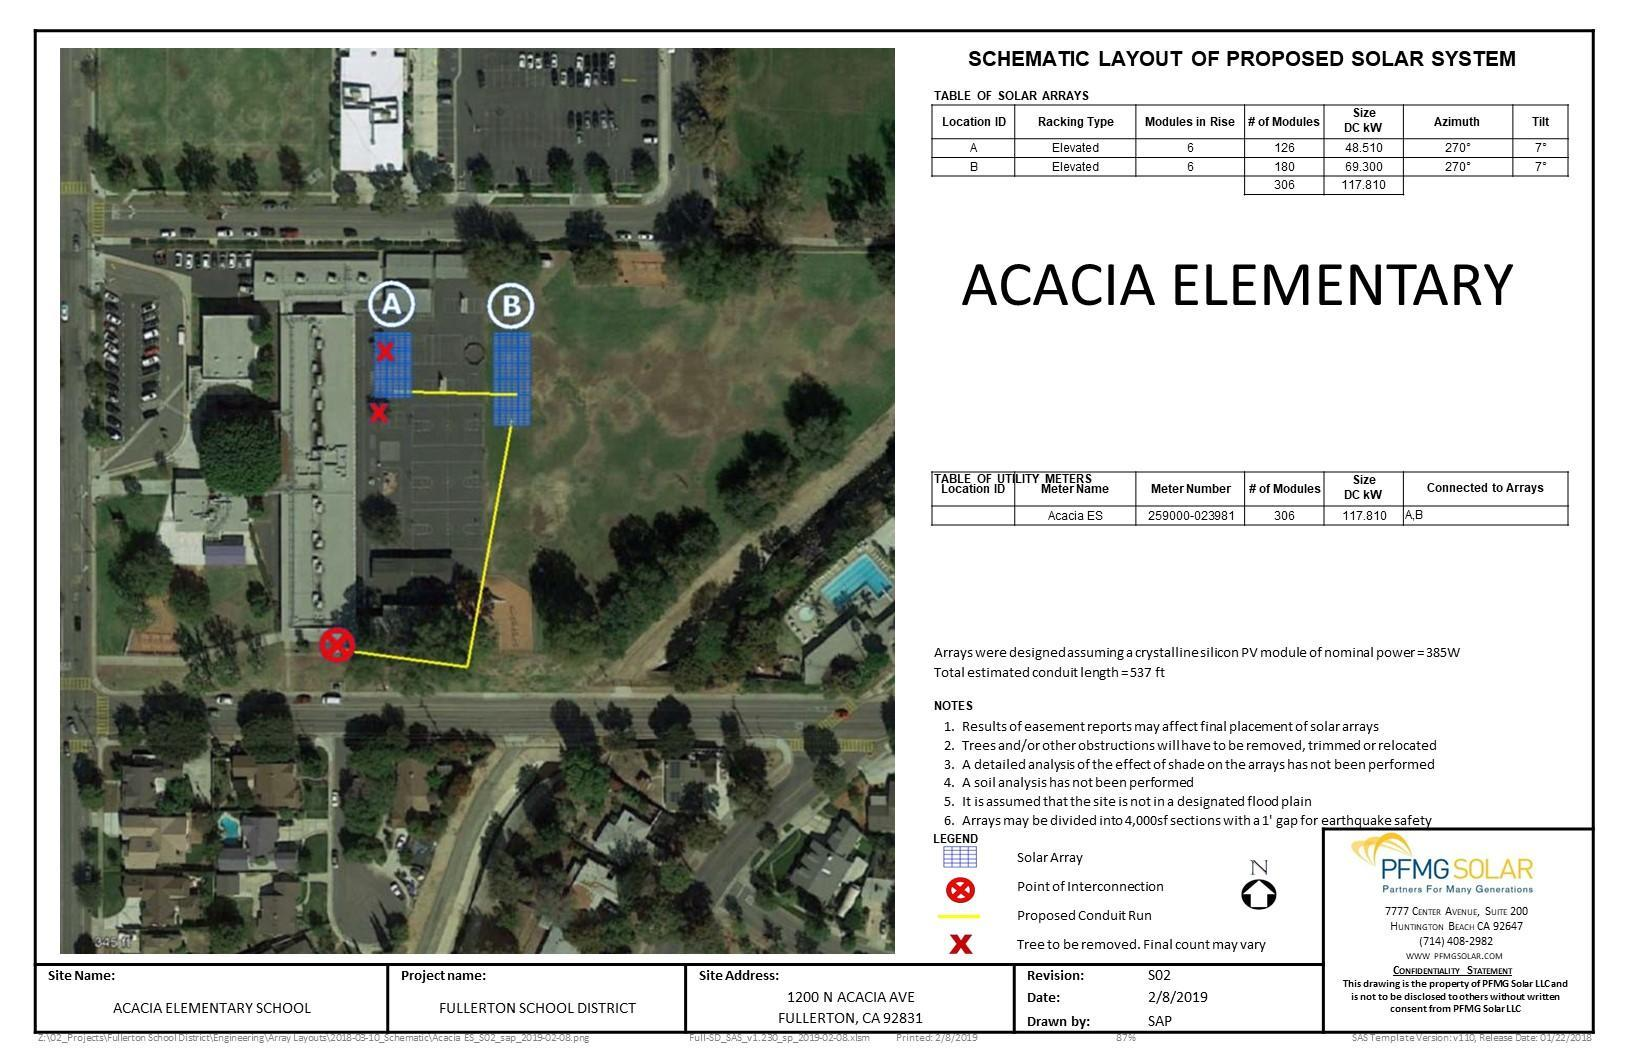 Acacia Elementary Schematic Layout of Proposed Solar System